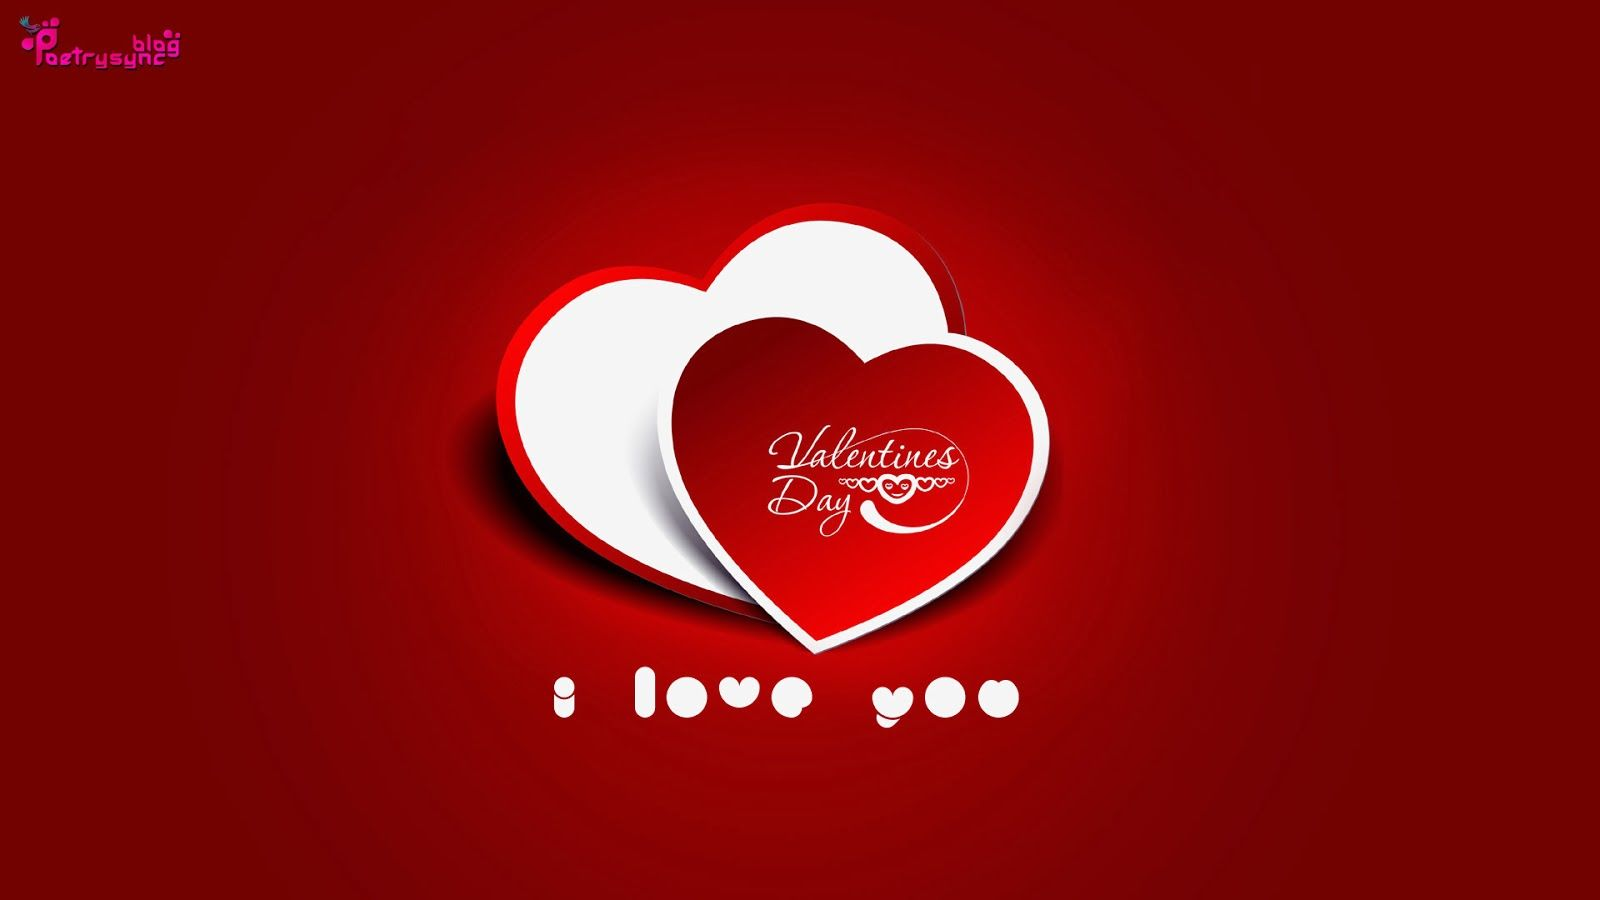 Valentines Day I Love You Wallpaper Pictures Photos And Images